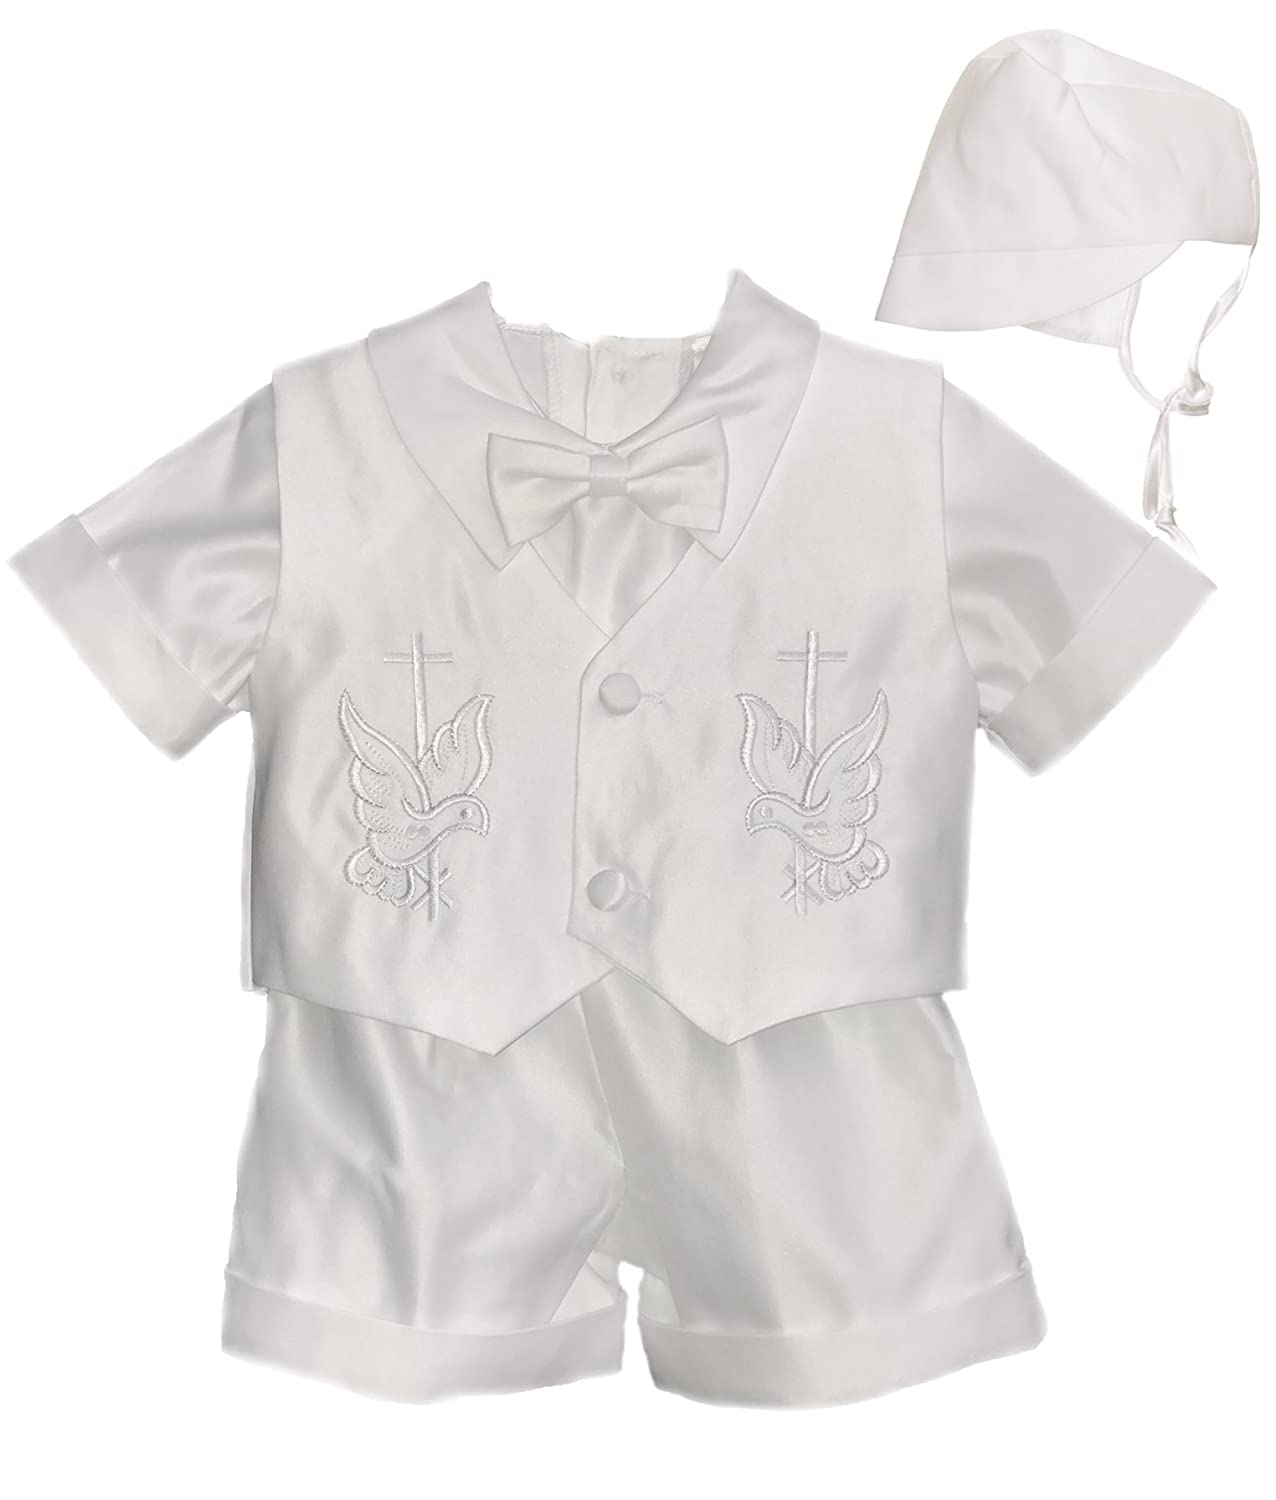 Baby Boys Baptism Outfit - Christening Short Set Cross Design Embroidery With Bonnet